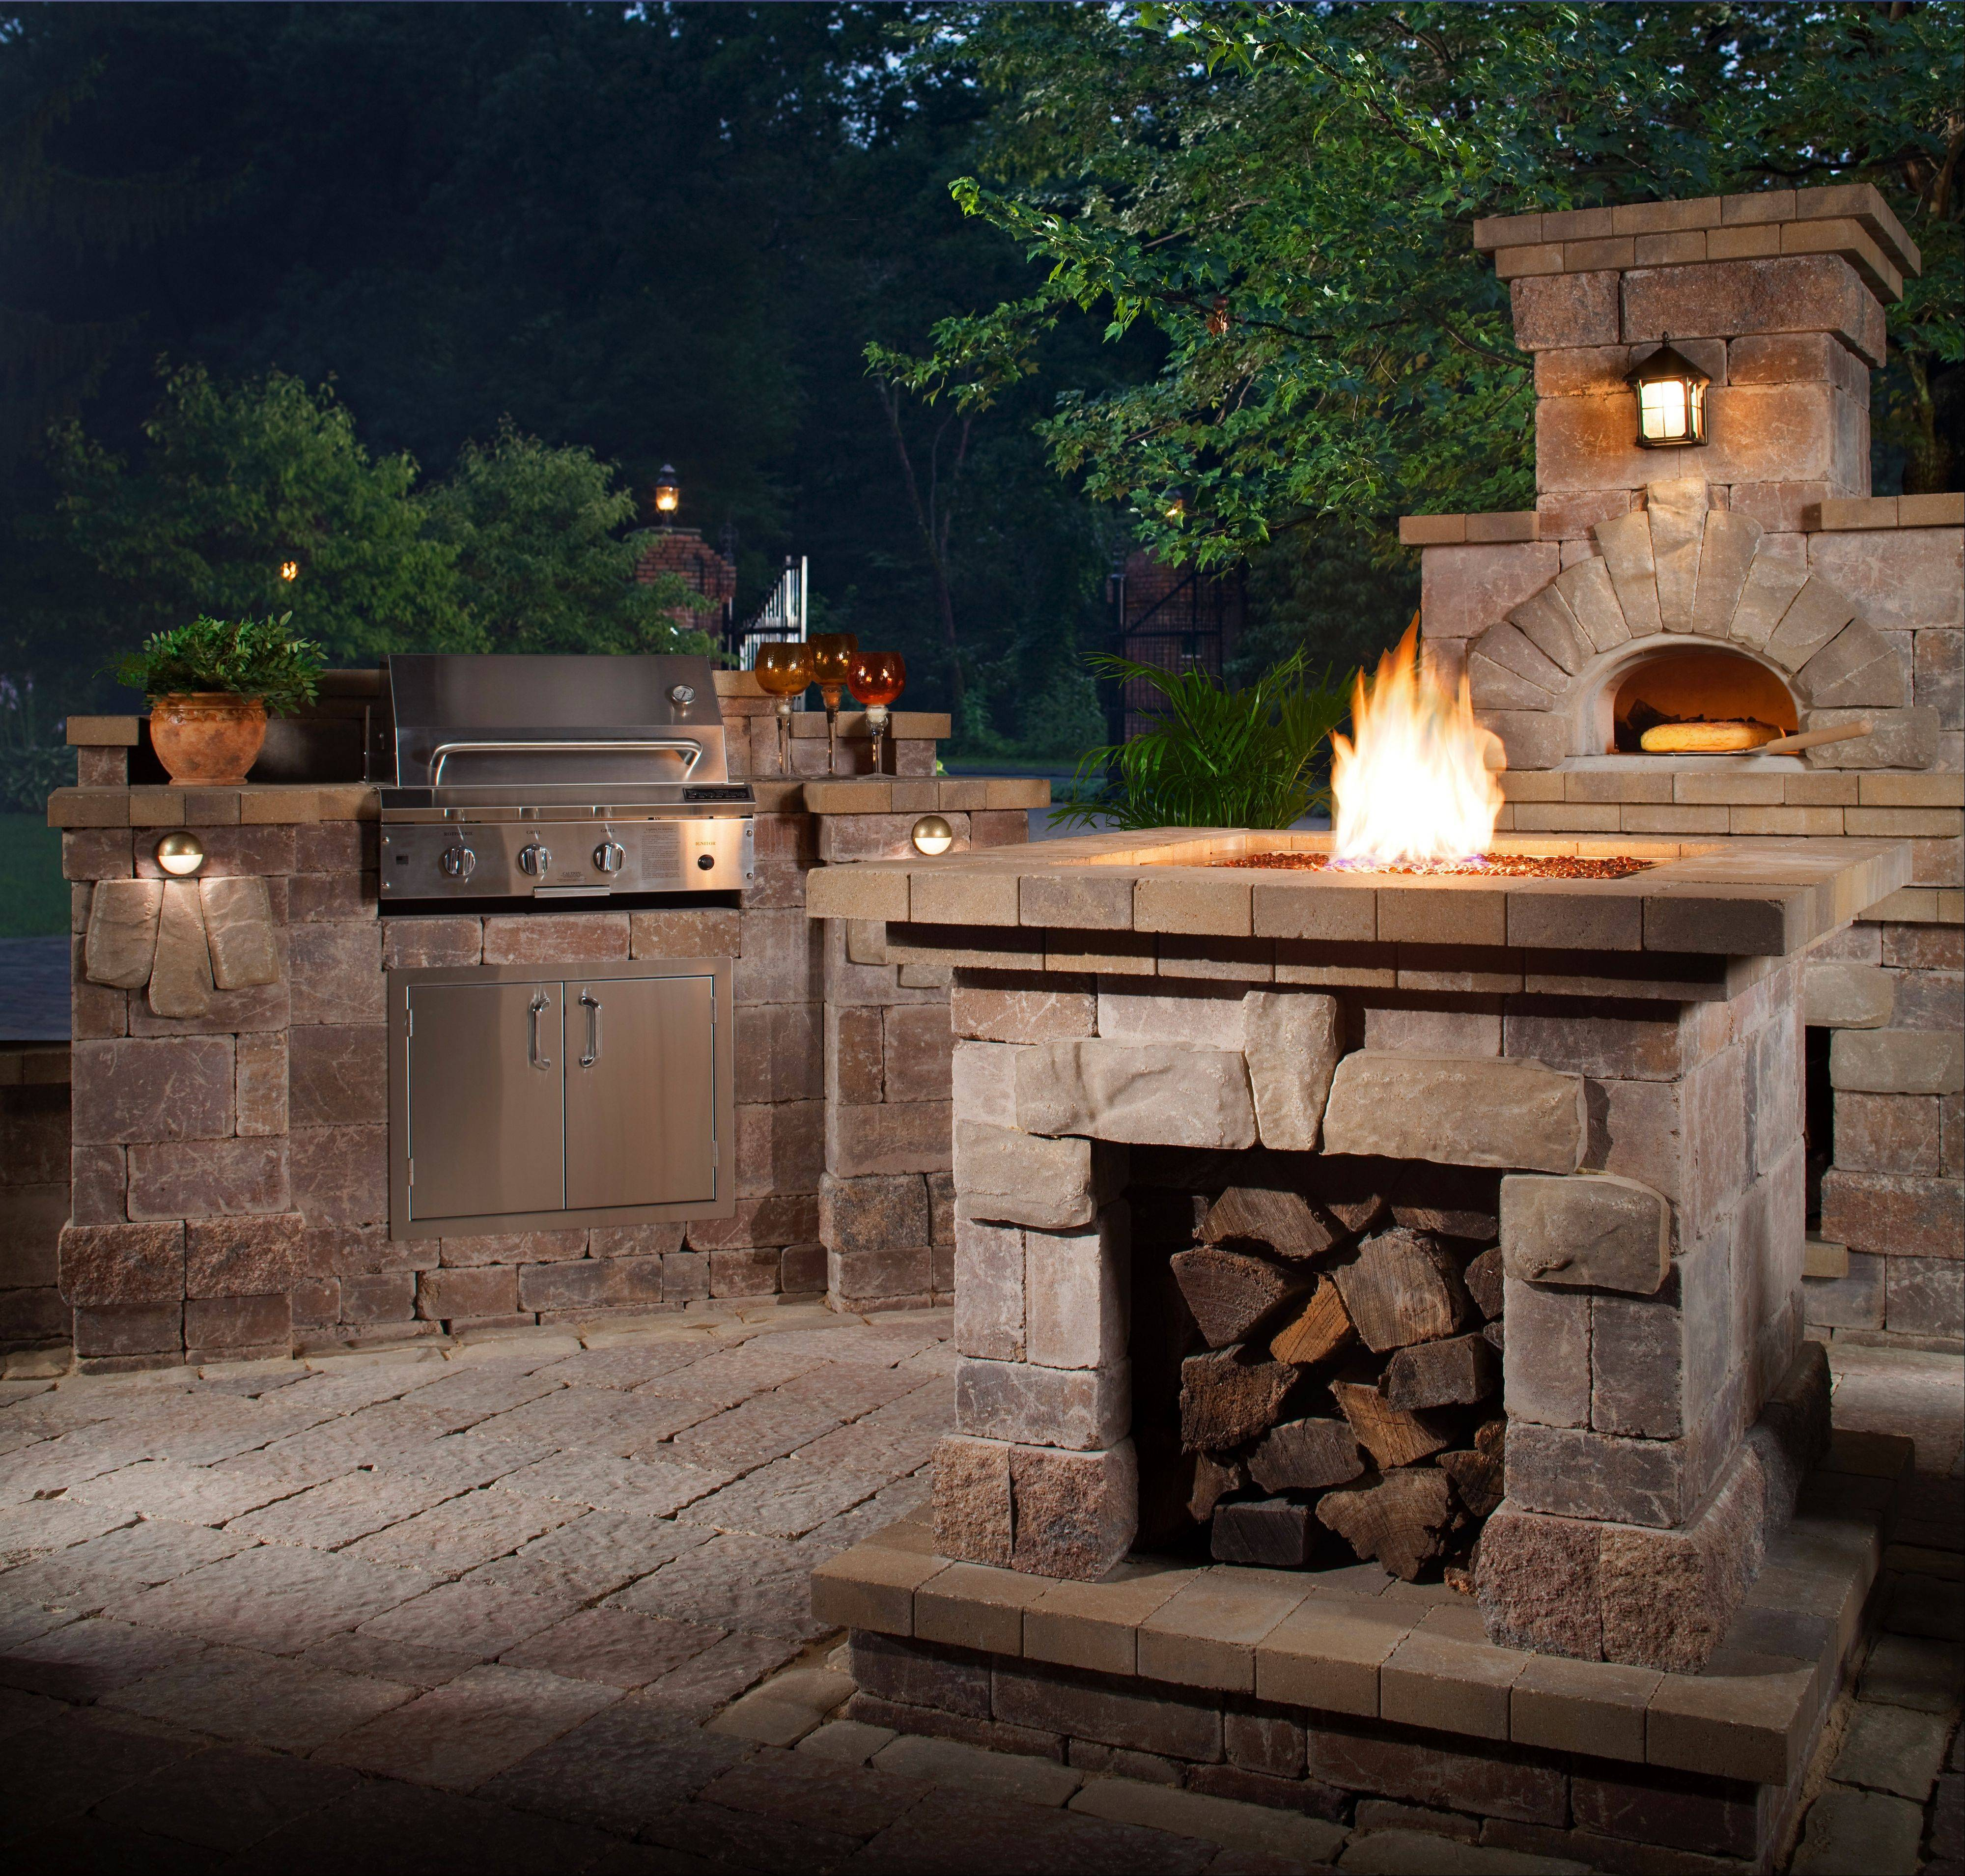 More and more homeowners are choosing a full outdoor experience, including a grill station, fire pit and brick oven, as show in the Harmoney Wexford collection by Belgard.